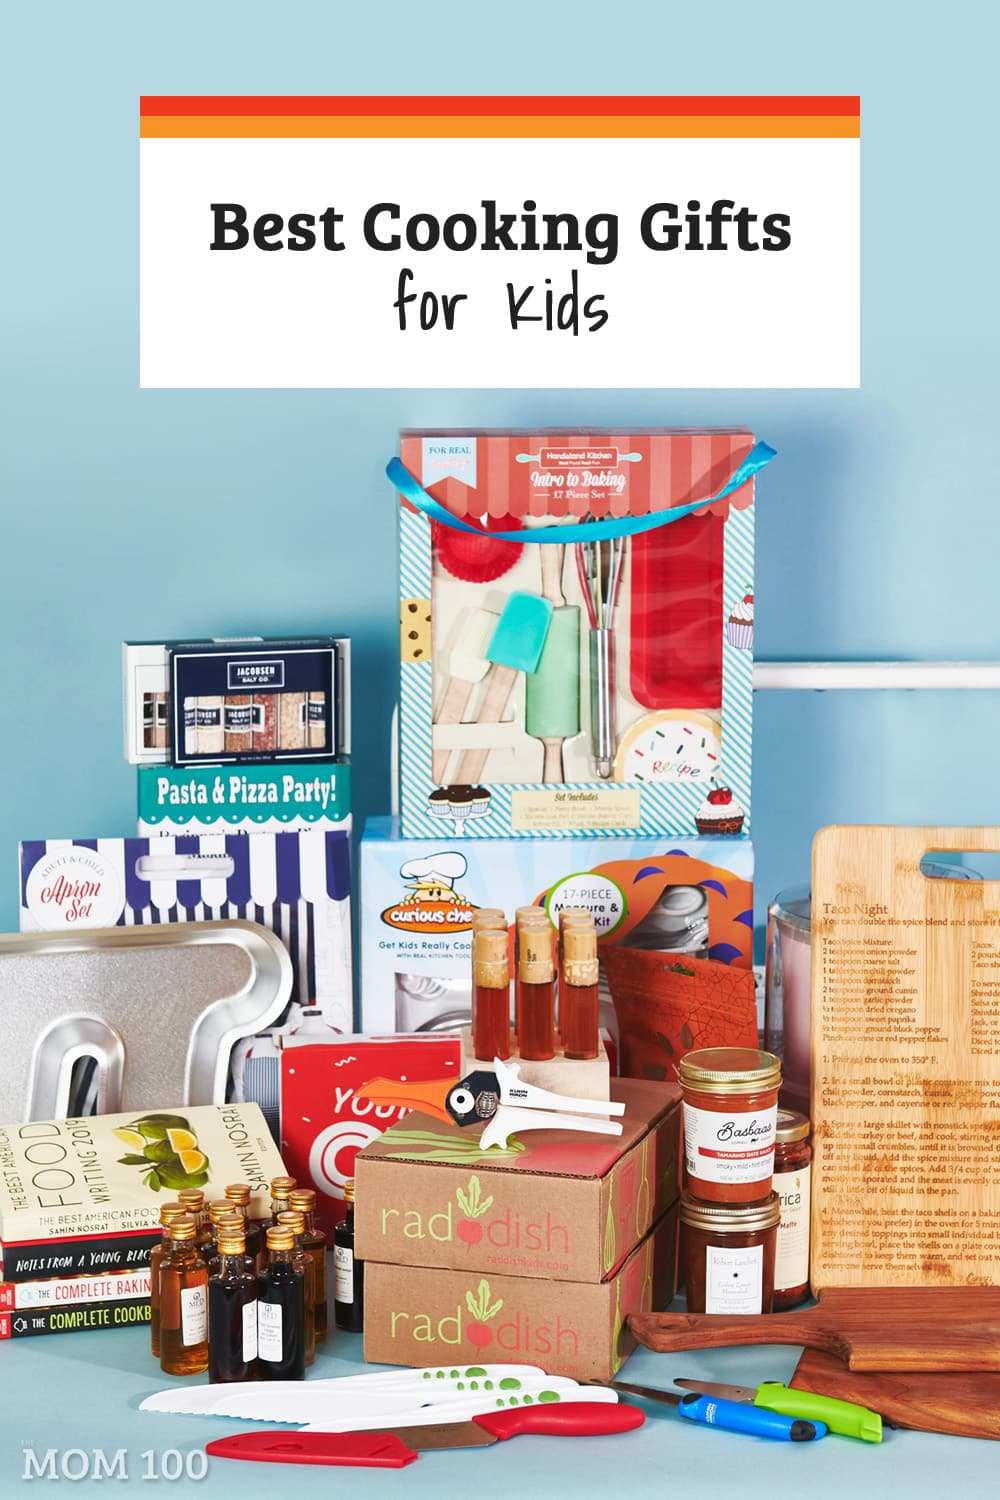 Best Cooking Gifts for Kids / This holiday season, encourage the young chefs in your life with this selection of the best cooking gifts for kids.